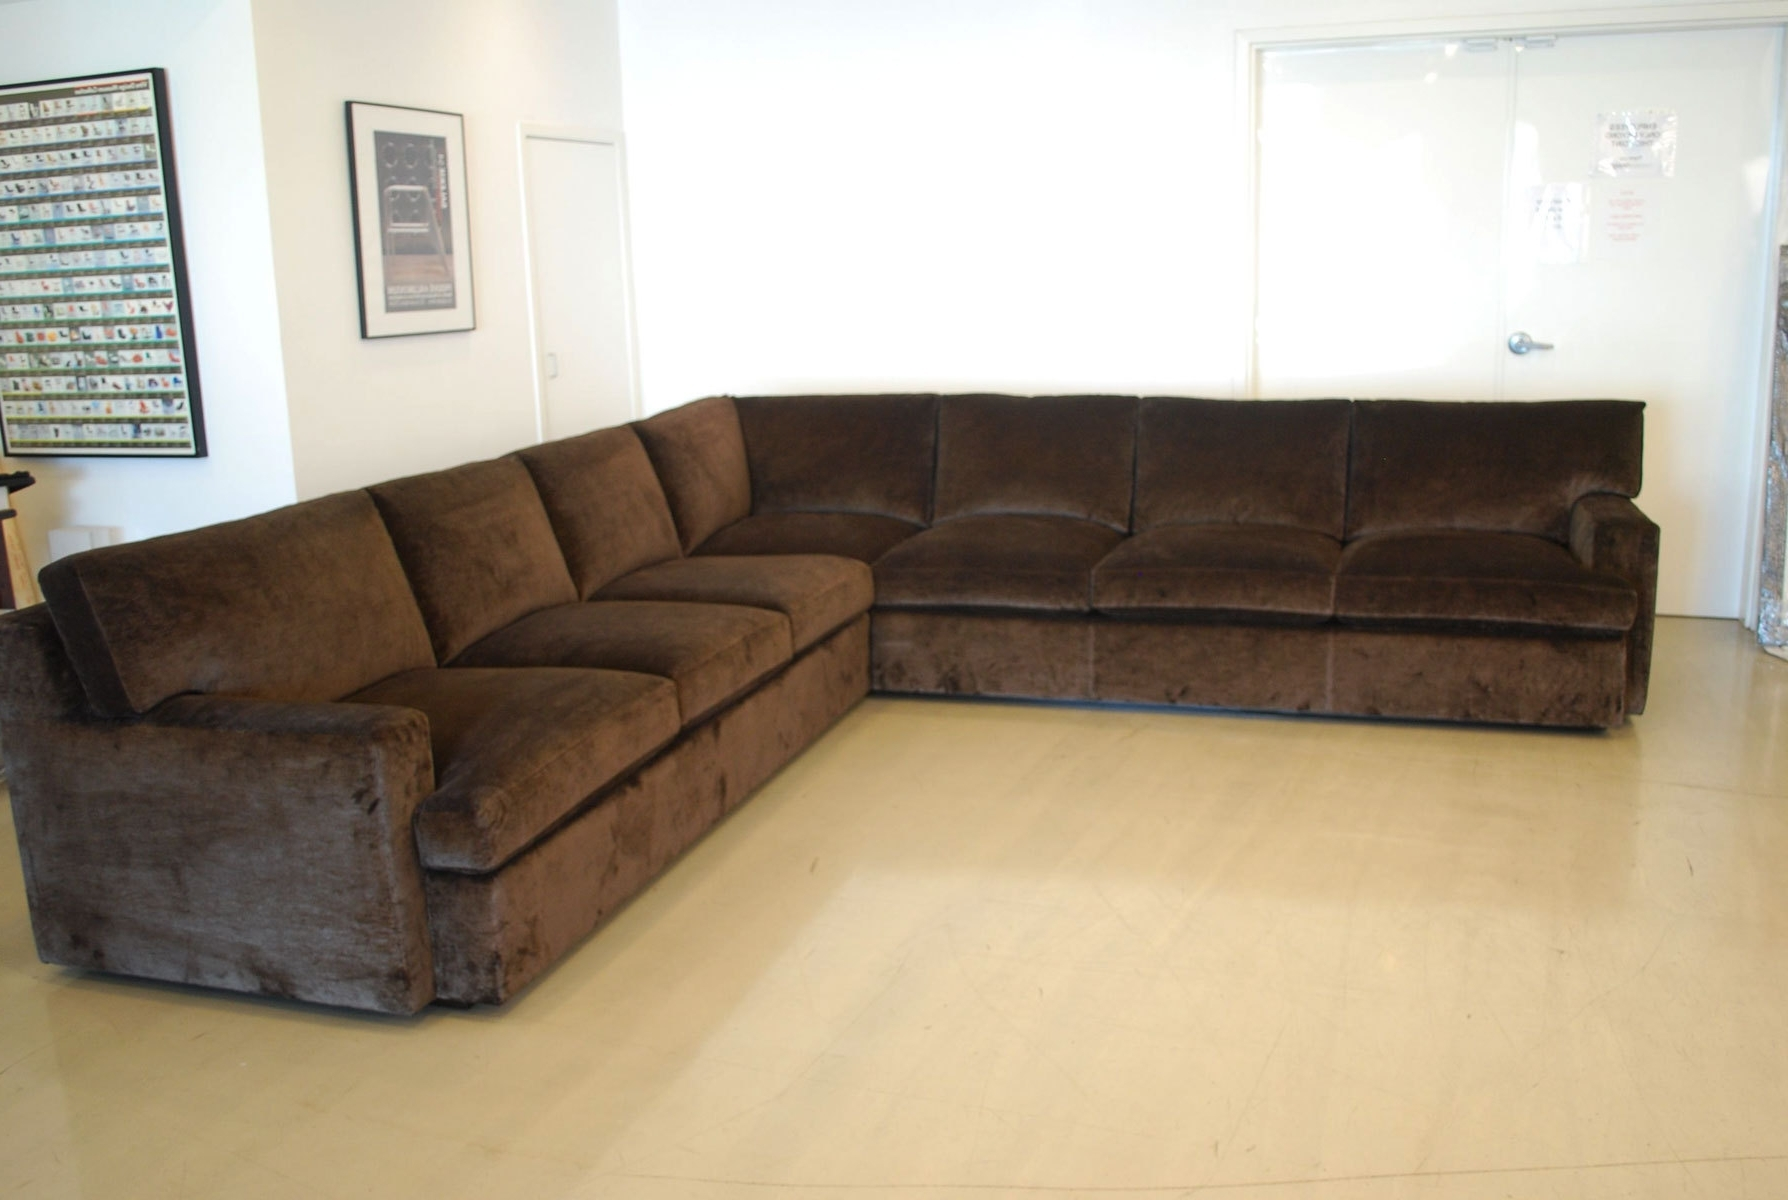 Preferred Amusing Large L Shaped Sectional Sofas 99 On The Brick Sofa Bed Regarding The Brick Sectional Sofas (View 13 of 20)